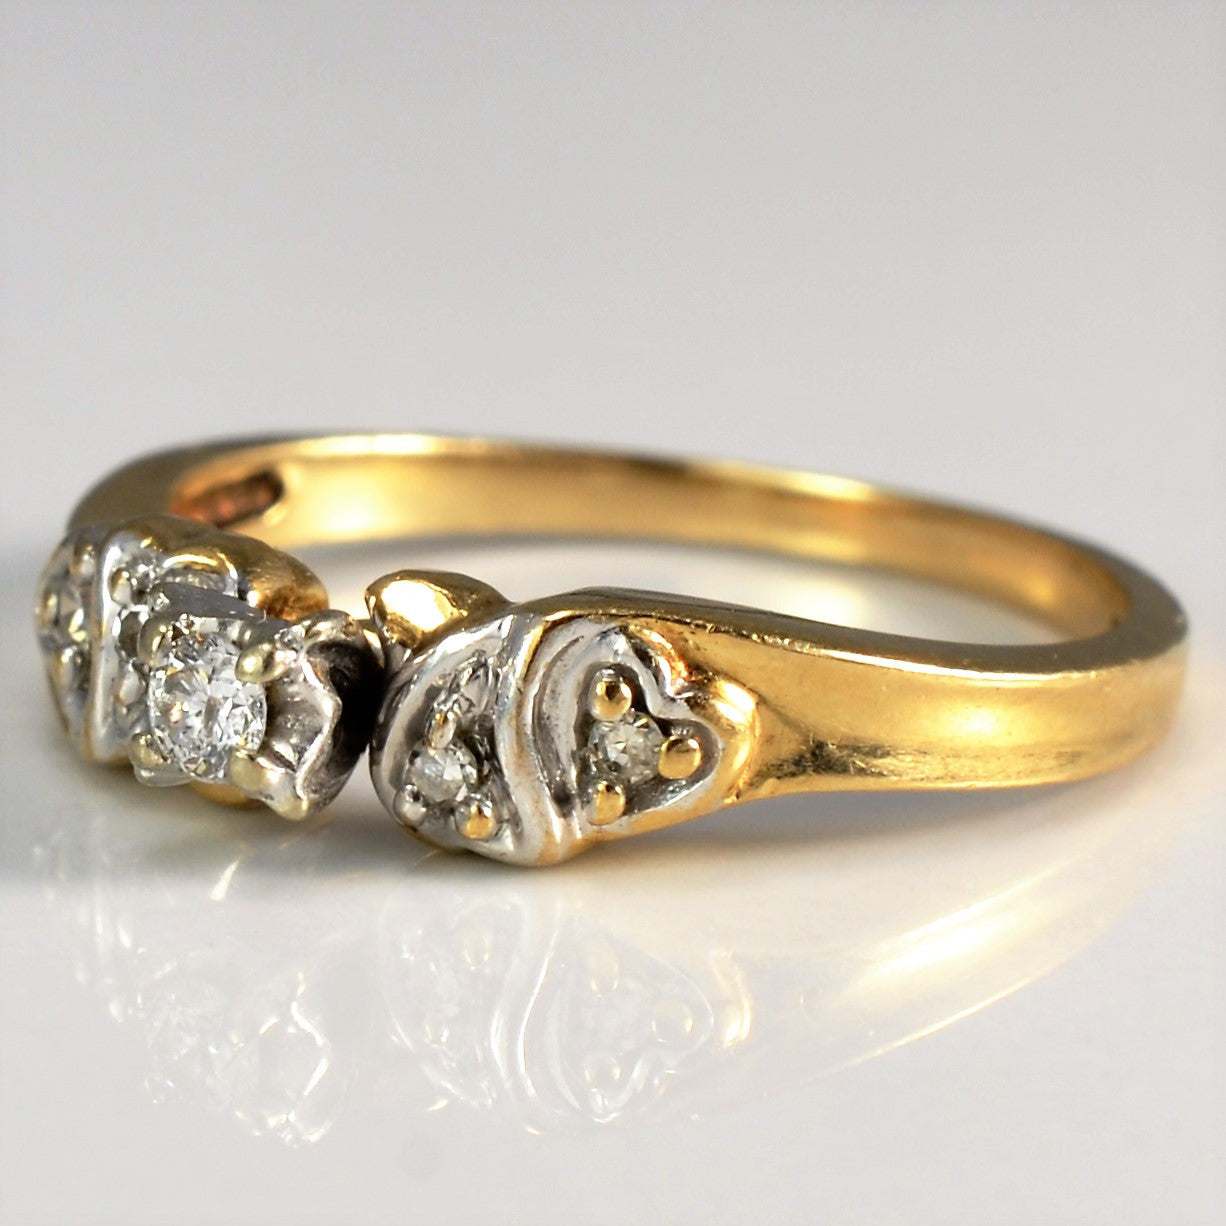 Vintage Heart Detailed Diamond Ring | 0.09 ctw, SZ 6.5 |